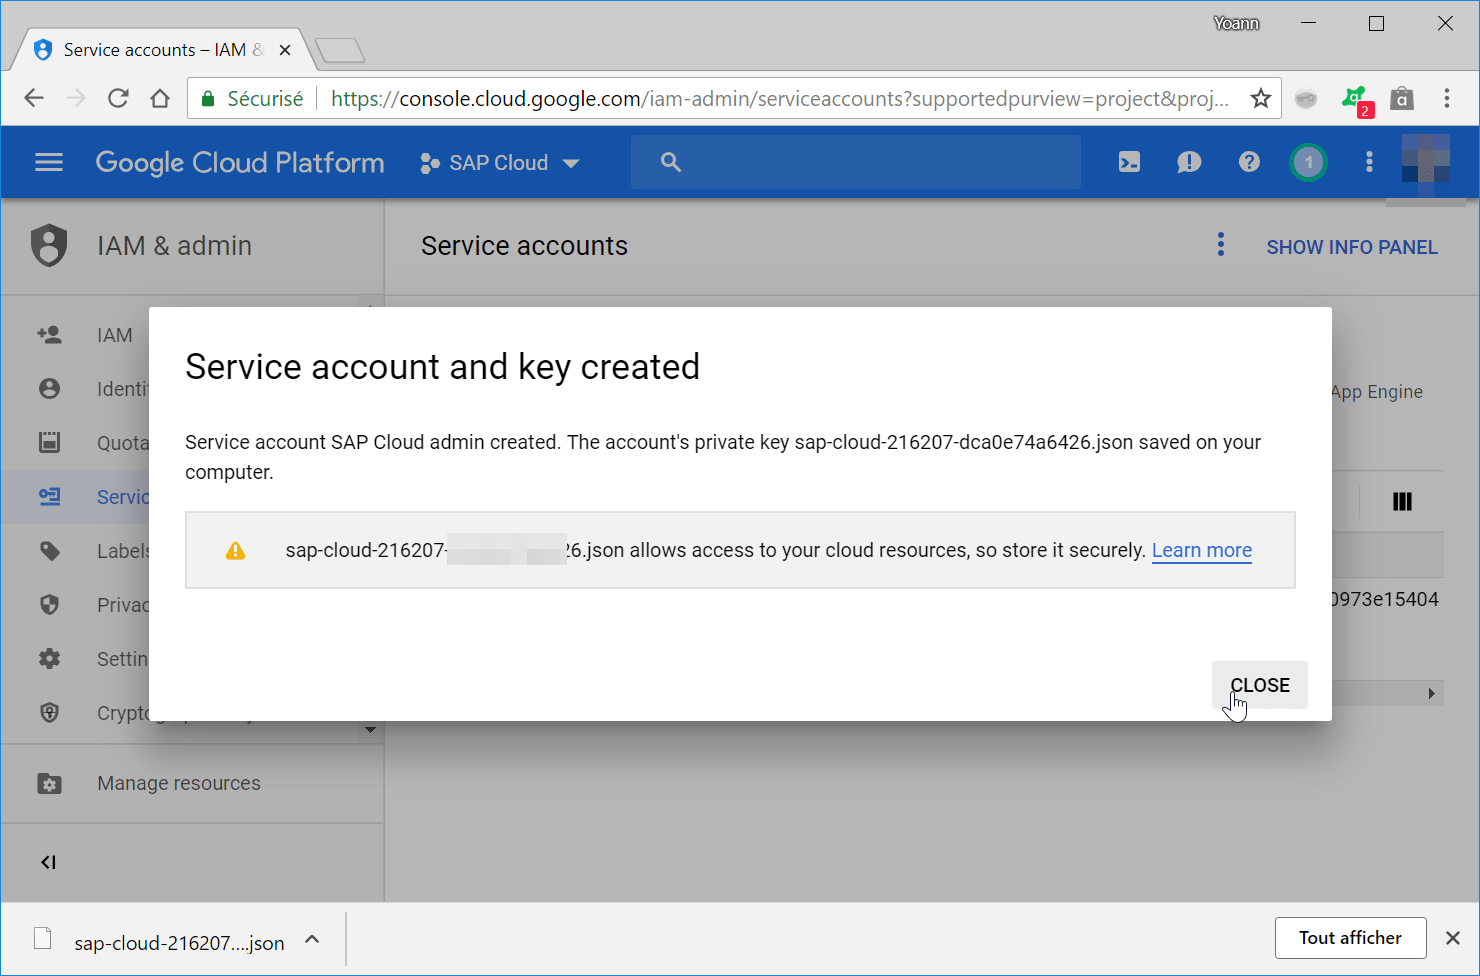 How to create a Google Cloud service account?